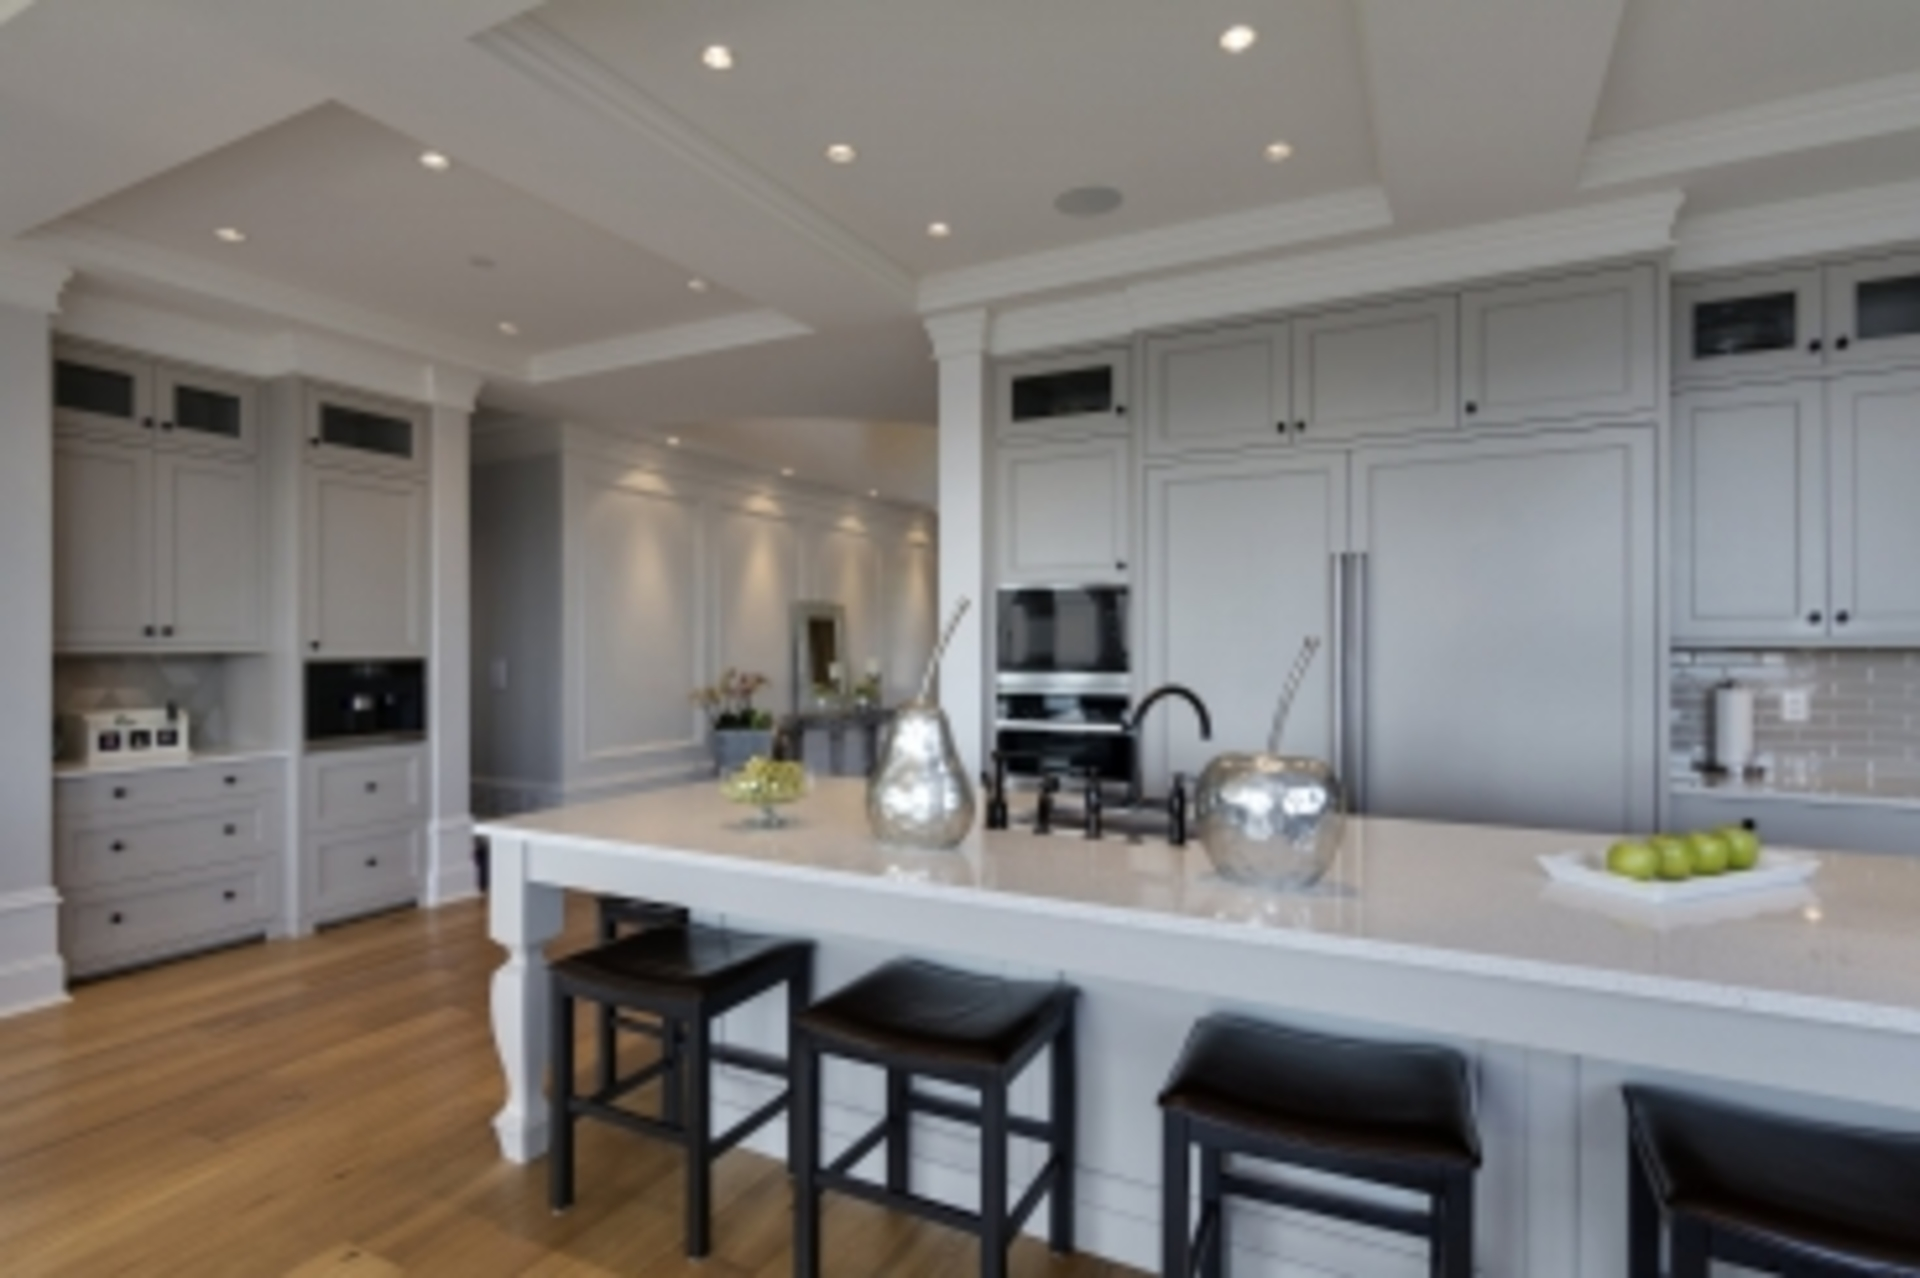 2aa2a44b-447c-49a1-b56f-3c8b6770bd3e at 4120 Burkehill Place, Bayridge, West Vancouver